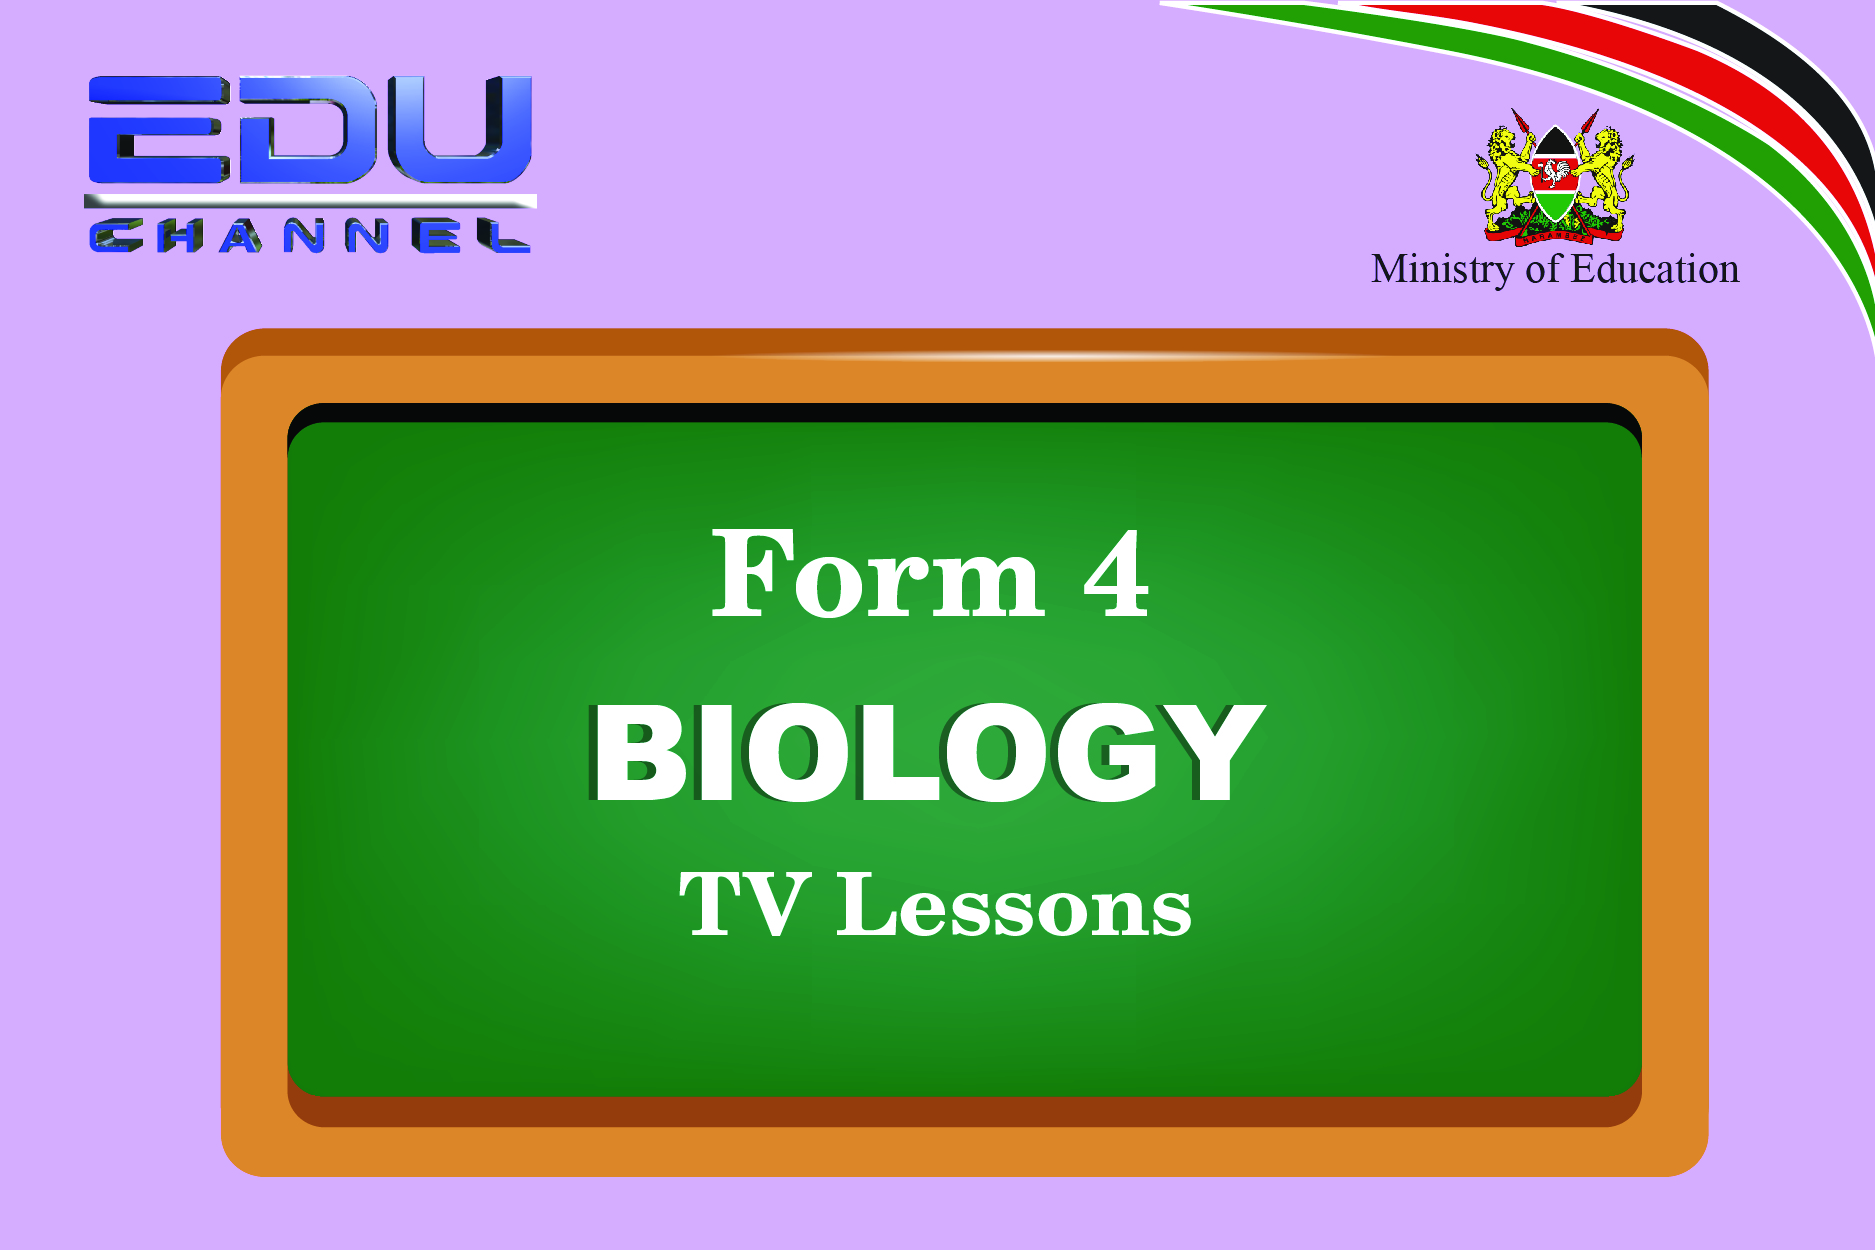 Form 4 Biology Lesson 7:Reception Response and Coordination - Synapse and drug Abuse